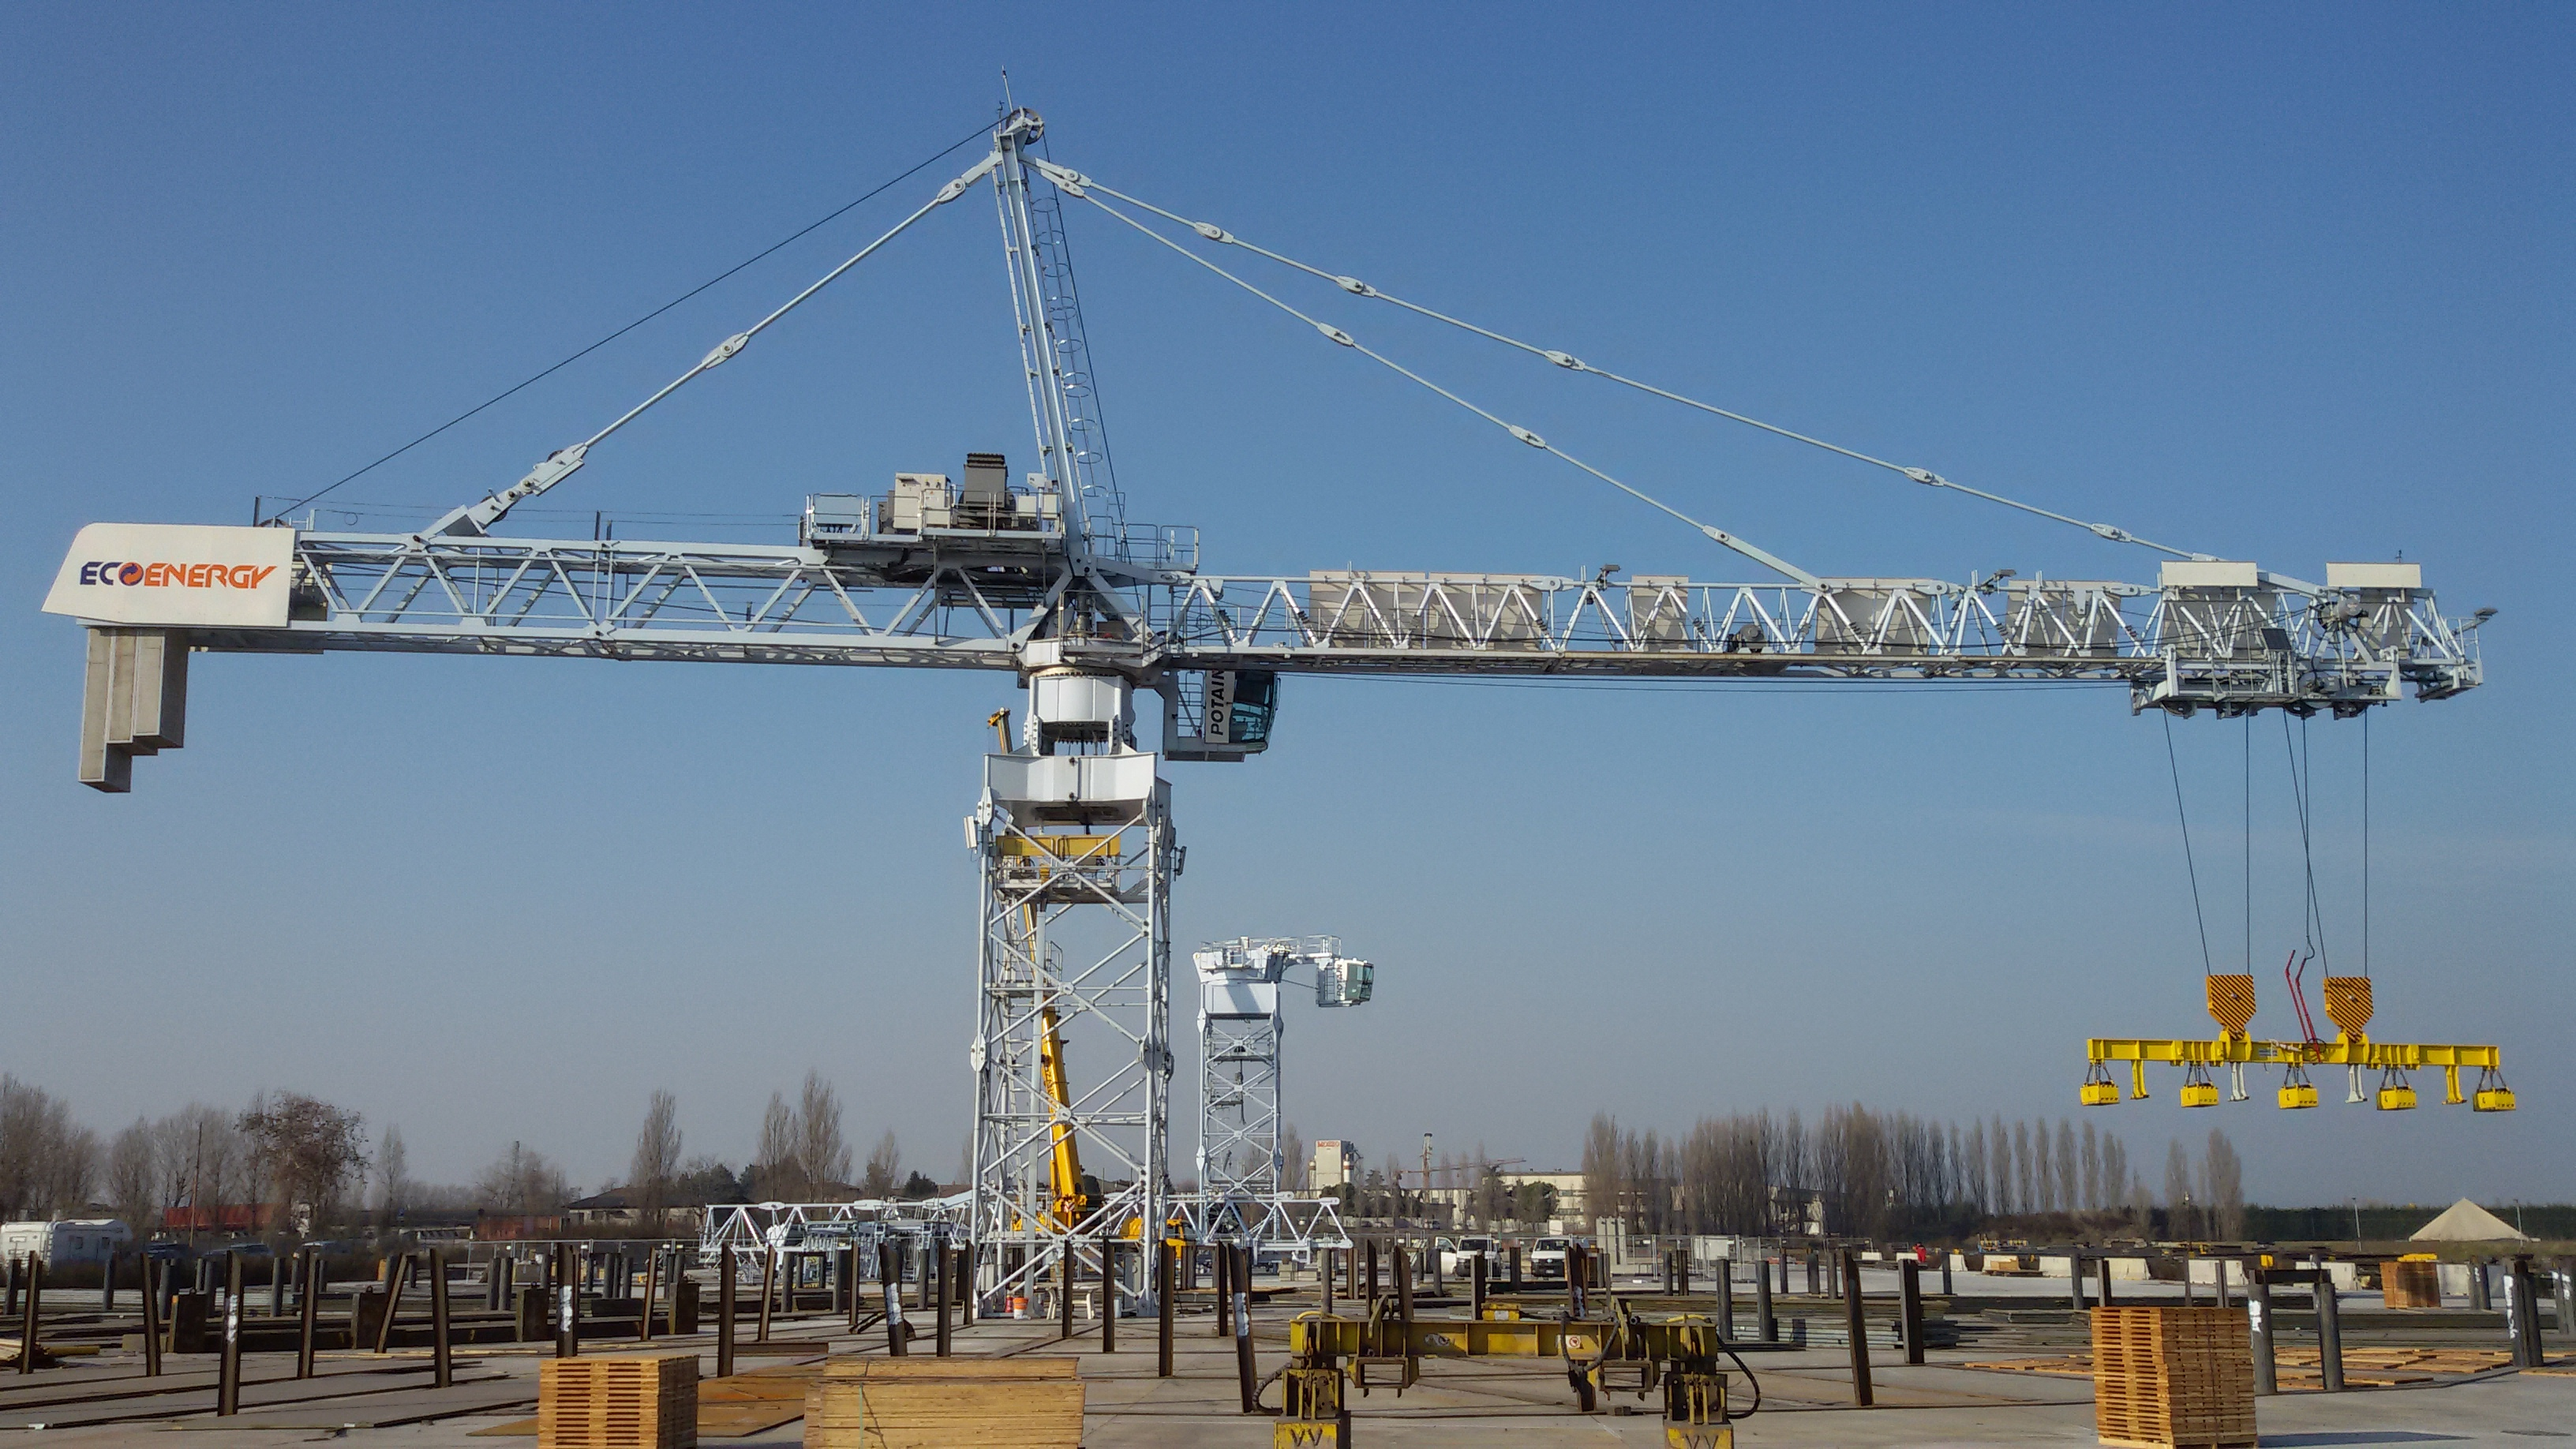 Specially Designed Potain Tower Cranes Pick Steel In Italy Crane Network News